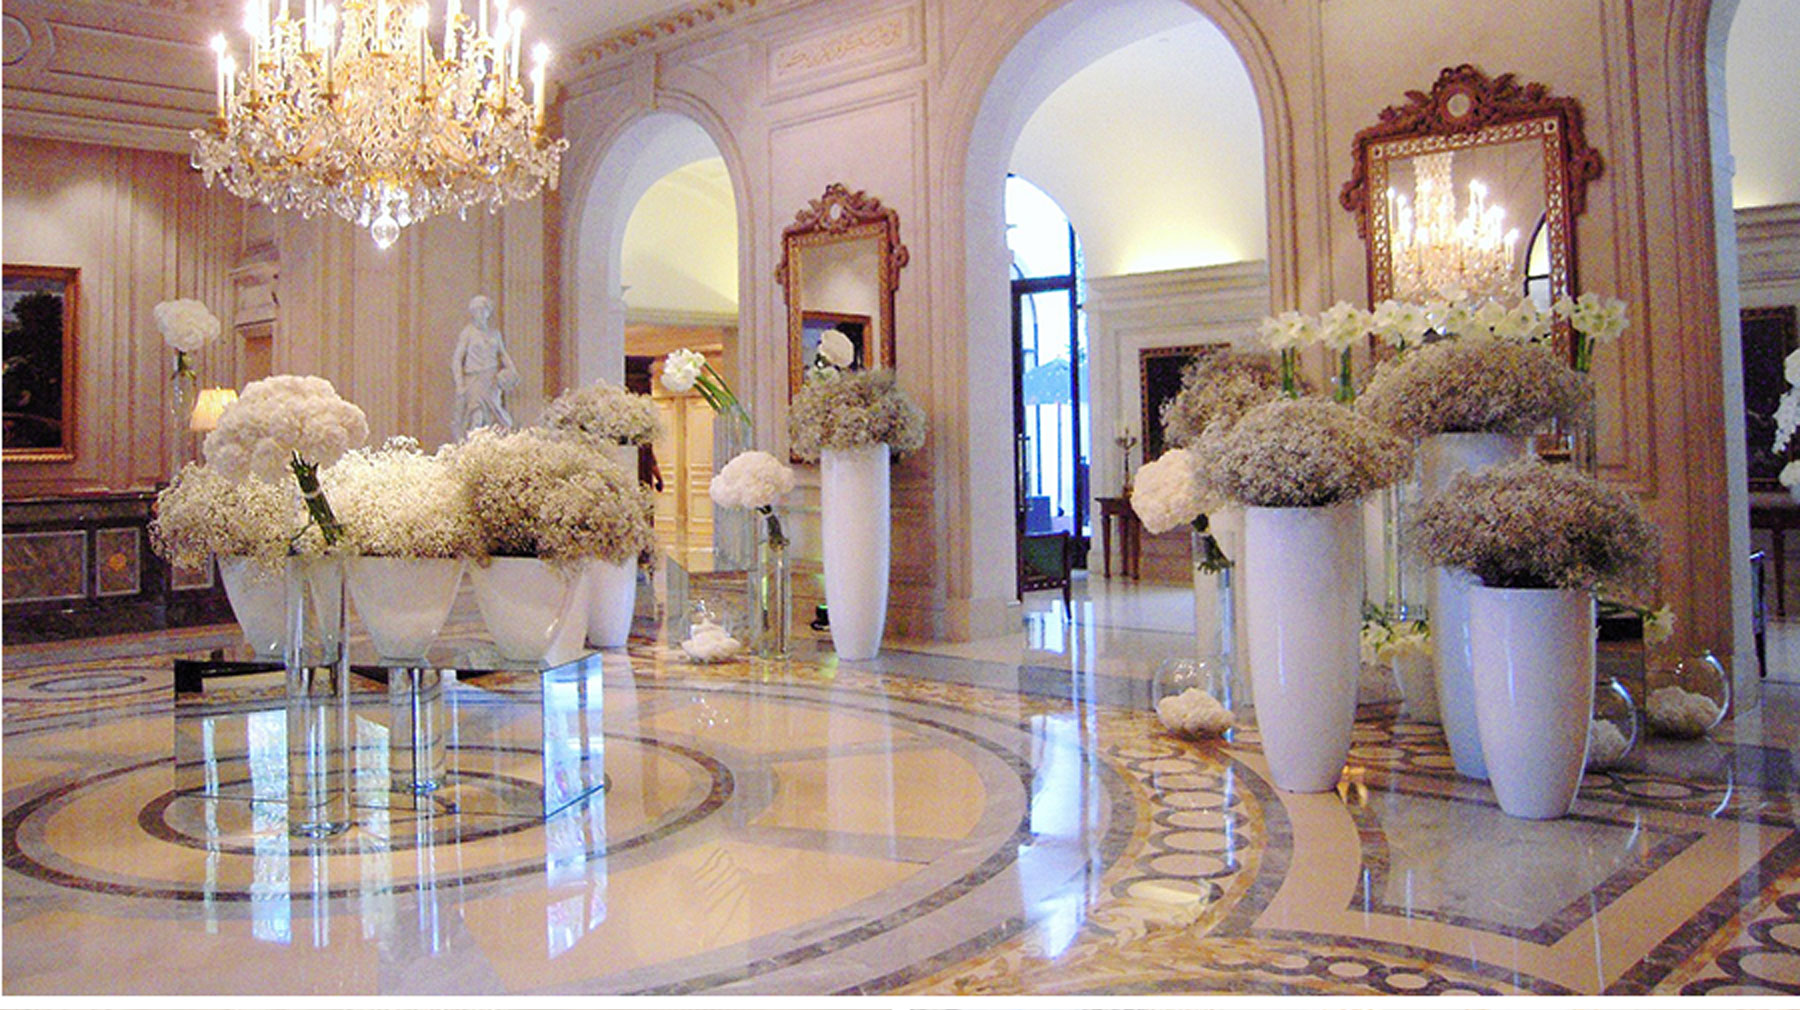 Four Seasons Hotel George V, Paris, France